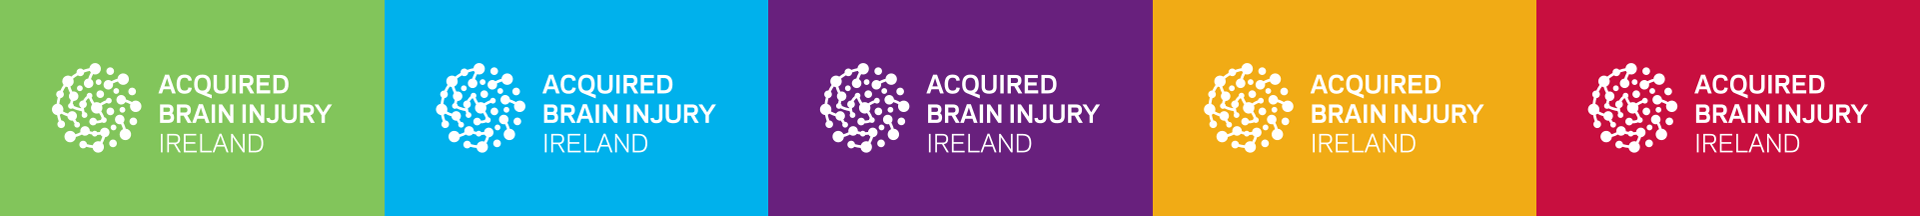 Acquired Brain Injury new brand identity on different colours from the logo